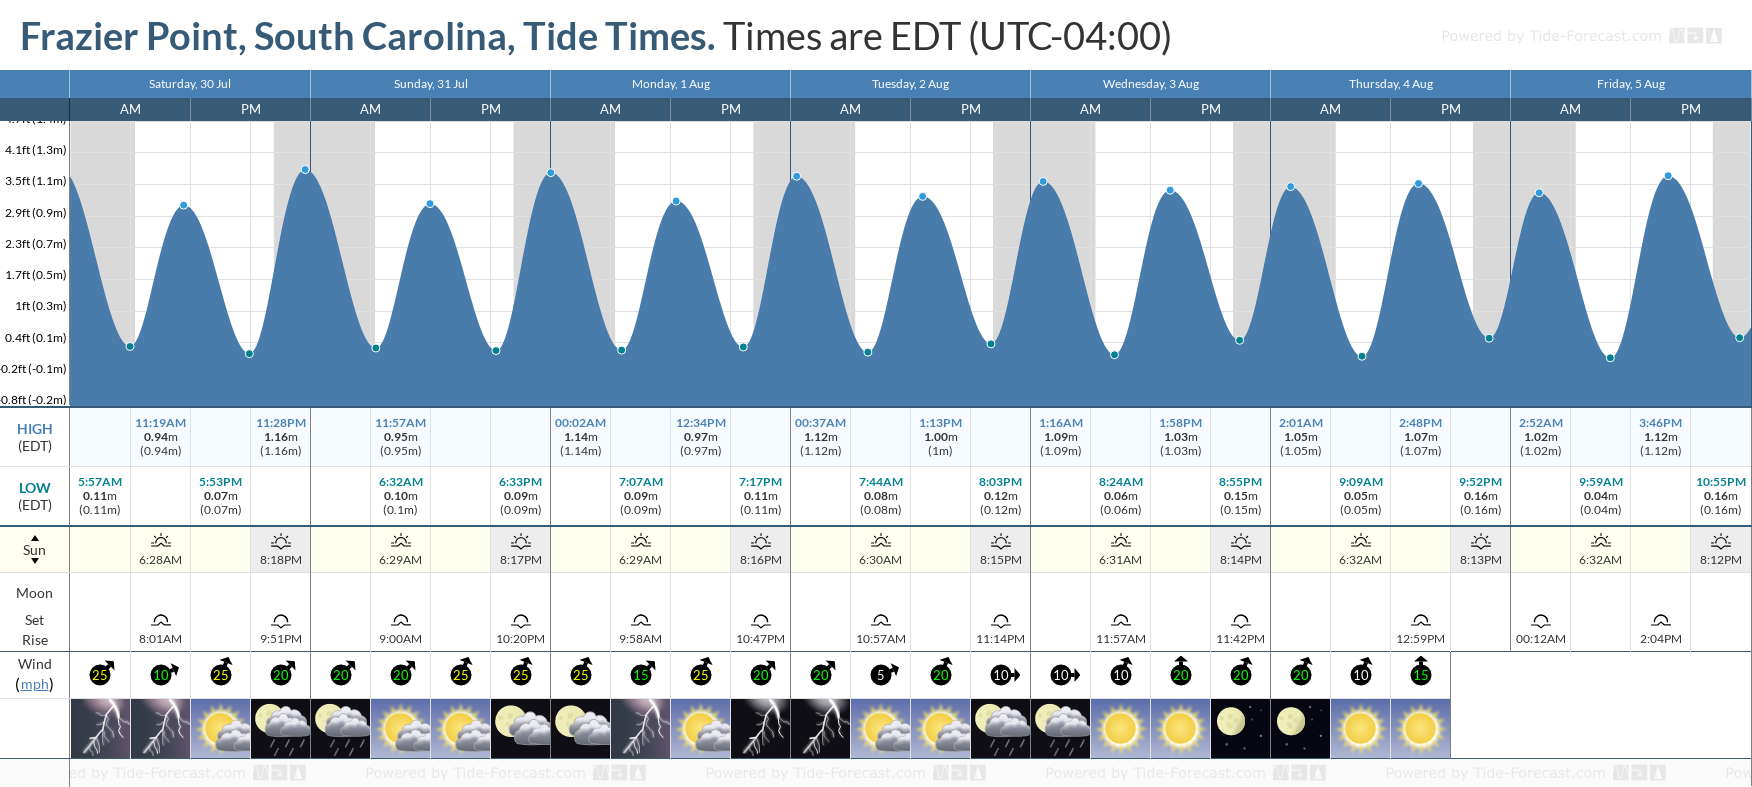 Frazier Point, South Carolina Tide Chart including high and low tide tide times for the next 7 days